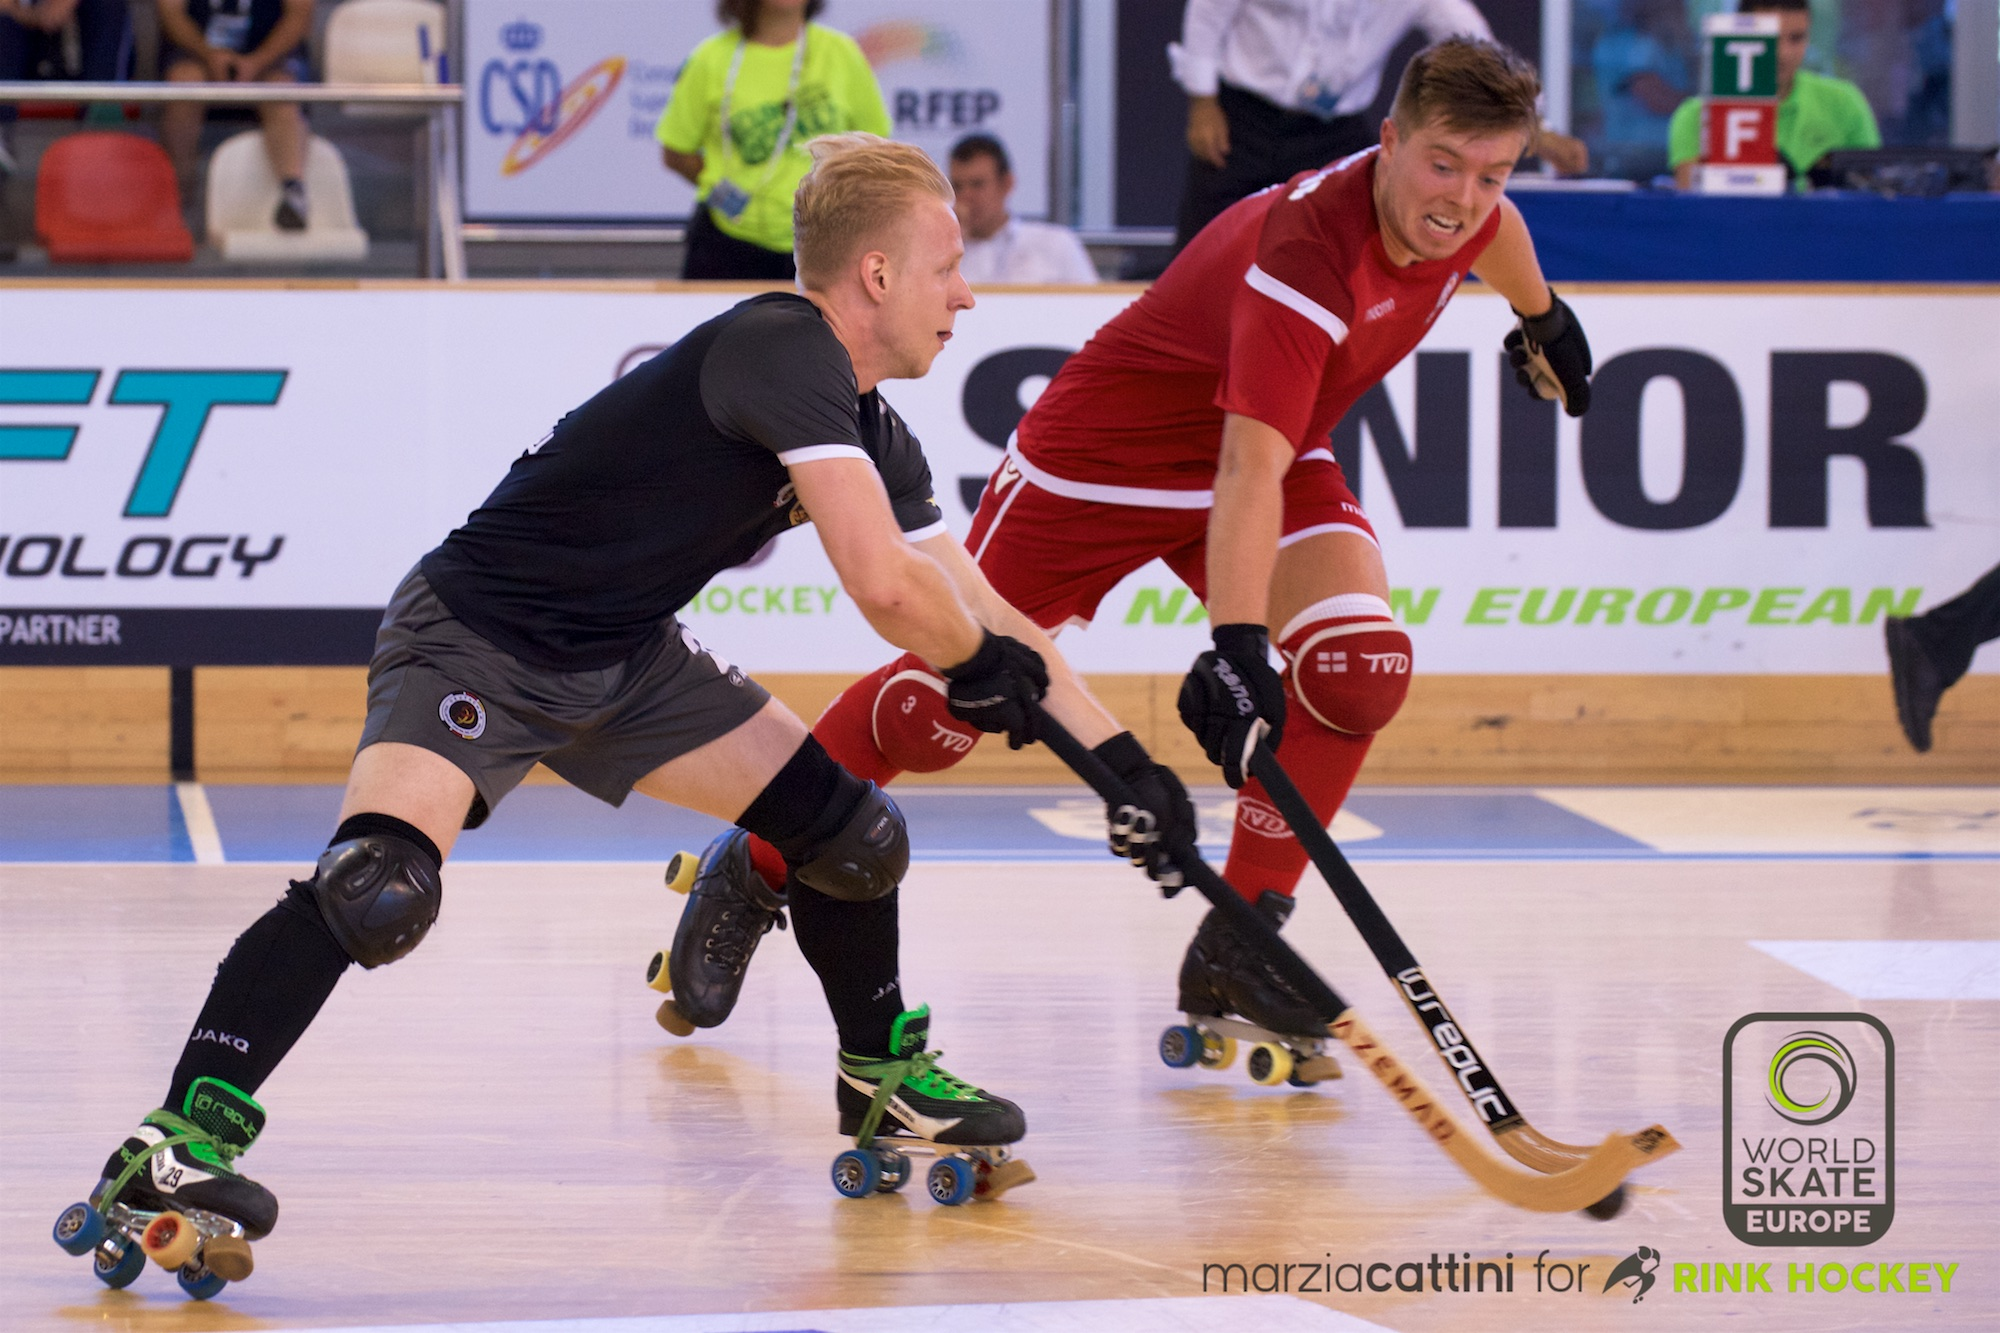 PHOTOS – 22/07/2018 - EUROHOCKEY CORUNA 2018 - Match #37 - England x Germany – Photos by Marzia Cattini